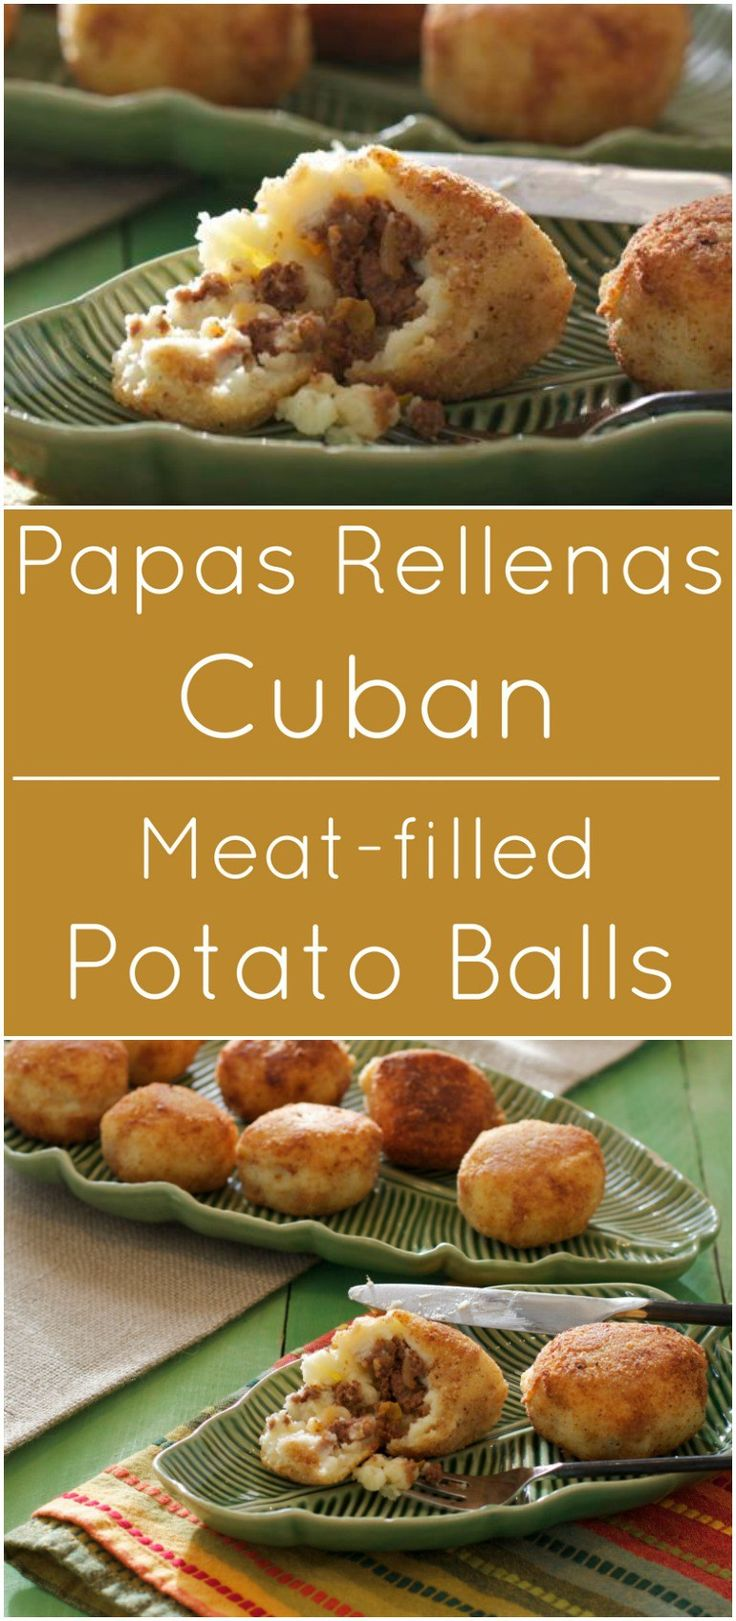 Papas Rellenas are traditional Cuban potato balls filled with ground meat.